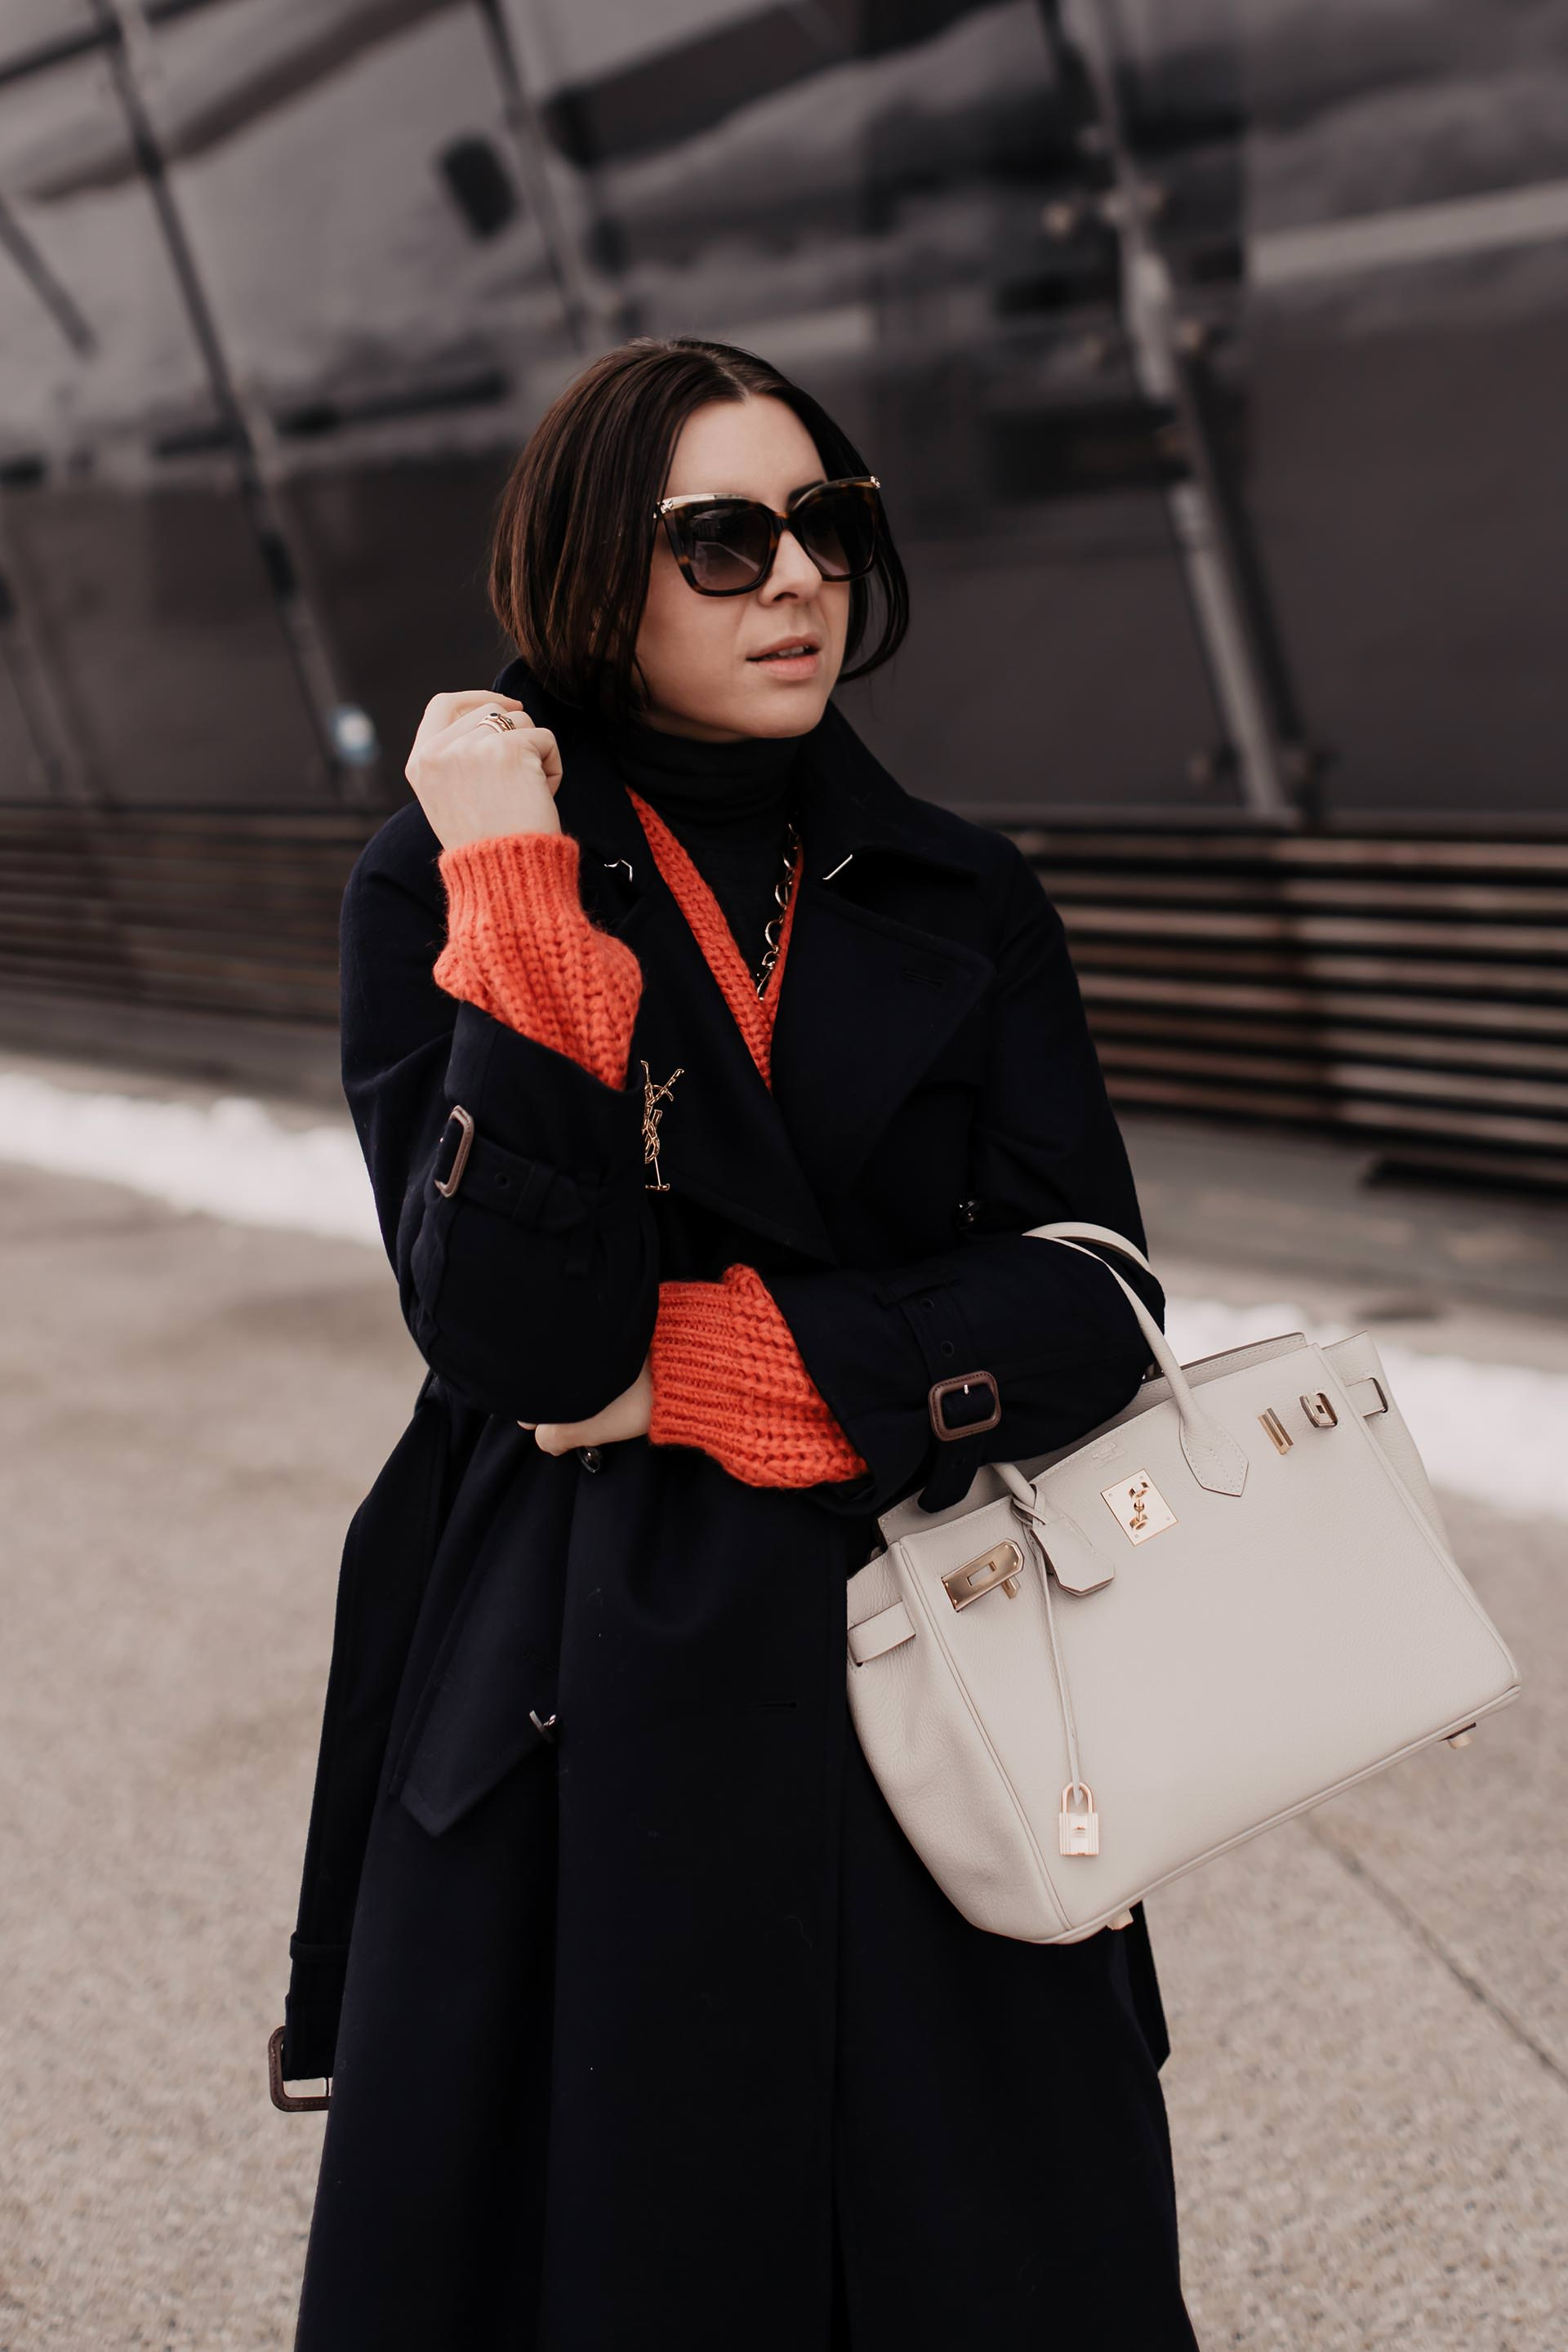 enthält Werbung // Winter Outfit, Modetrends 2019, dunkelblauer trenchcoat kombinieren, dunkelblauer Wollmantel, Isabel Marant Sneaker wedges, hermès birkin bag, Closed Strickpullover, living coral, Arket Mantel, Trenchcoat aus Wolle, Trenchcoat für den Winter, Closed Pedal Pusher Historic Indigo Denim Jeans, Fashion Blogger, www.whoismocca.com #trenchcoat #closed #pedalpusher #livingcoral #winteroutfit #modetrends #wintertrends #hermesbirkin